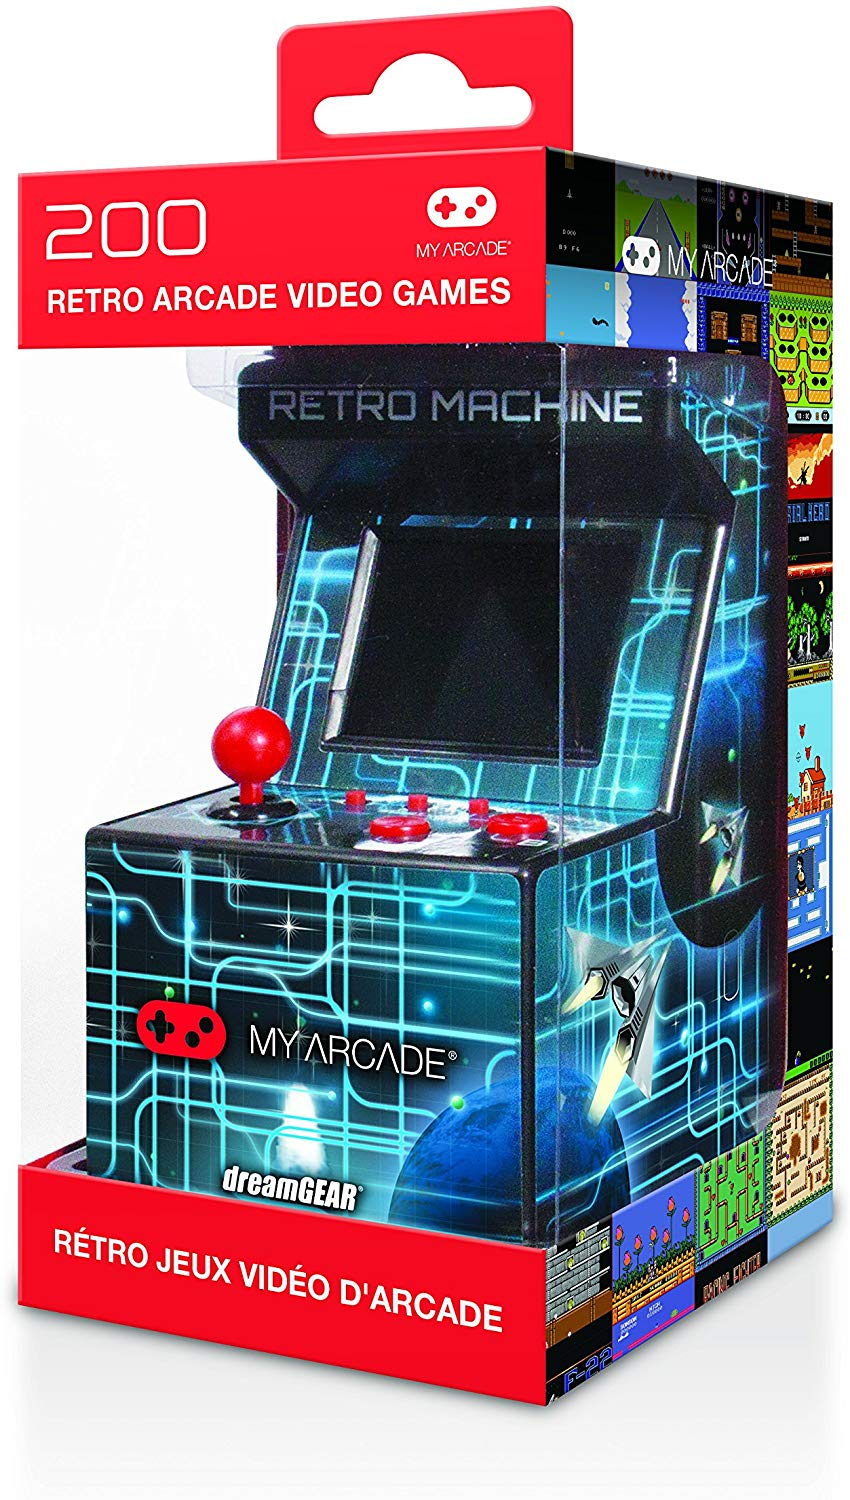 MYARCADE - RETRO MACHINE 200 GAMES